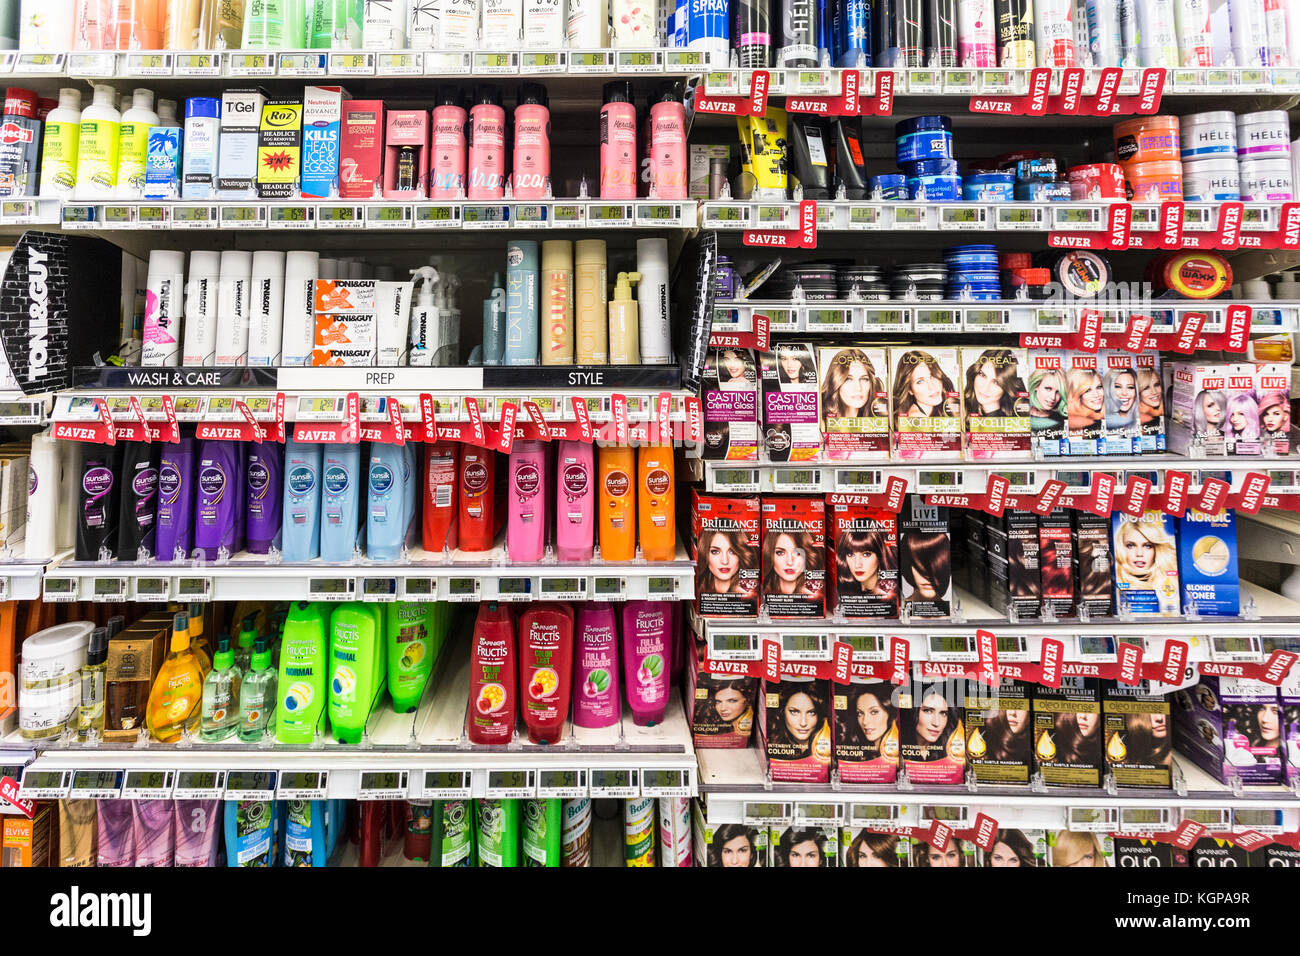 WELLINGTON, NEW ZEALAND - MARCH 1, 2017: Shampoo and other hair care products displayed in a supermarket in Wellingtion Stock Photo